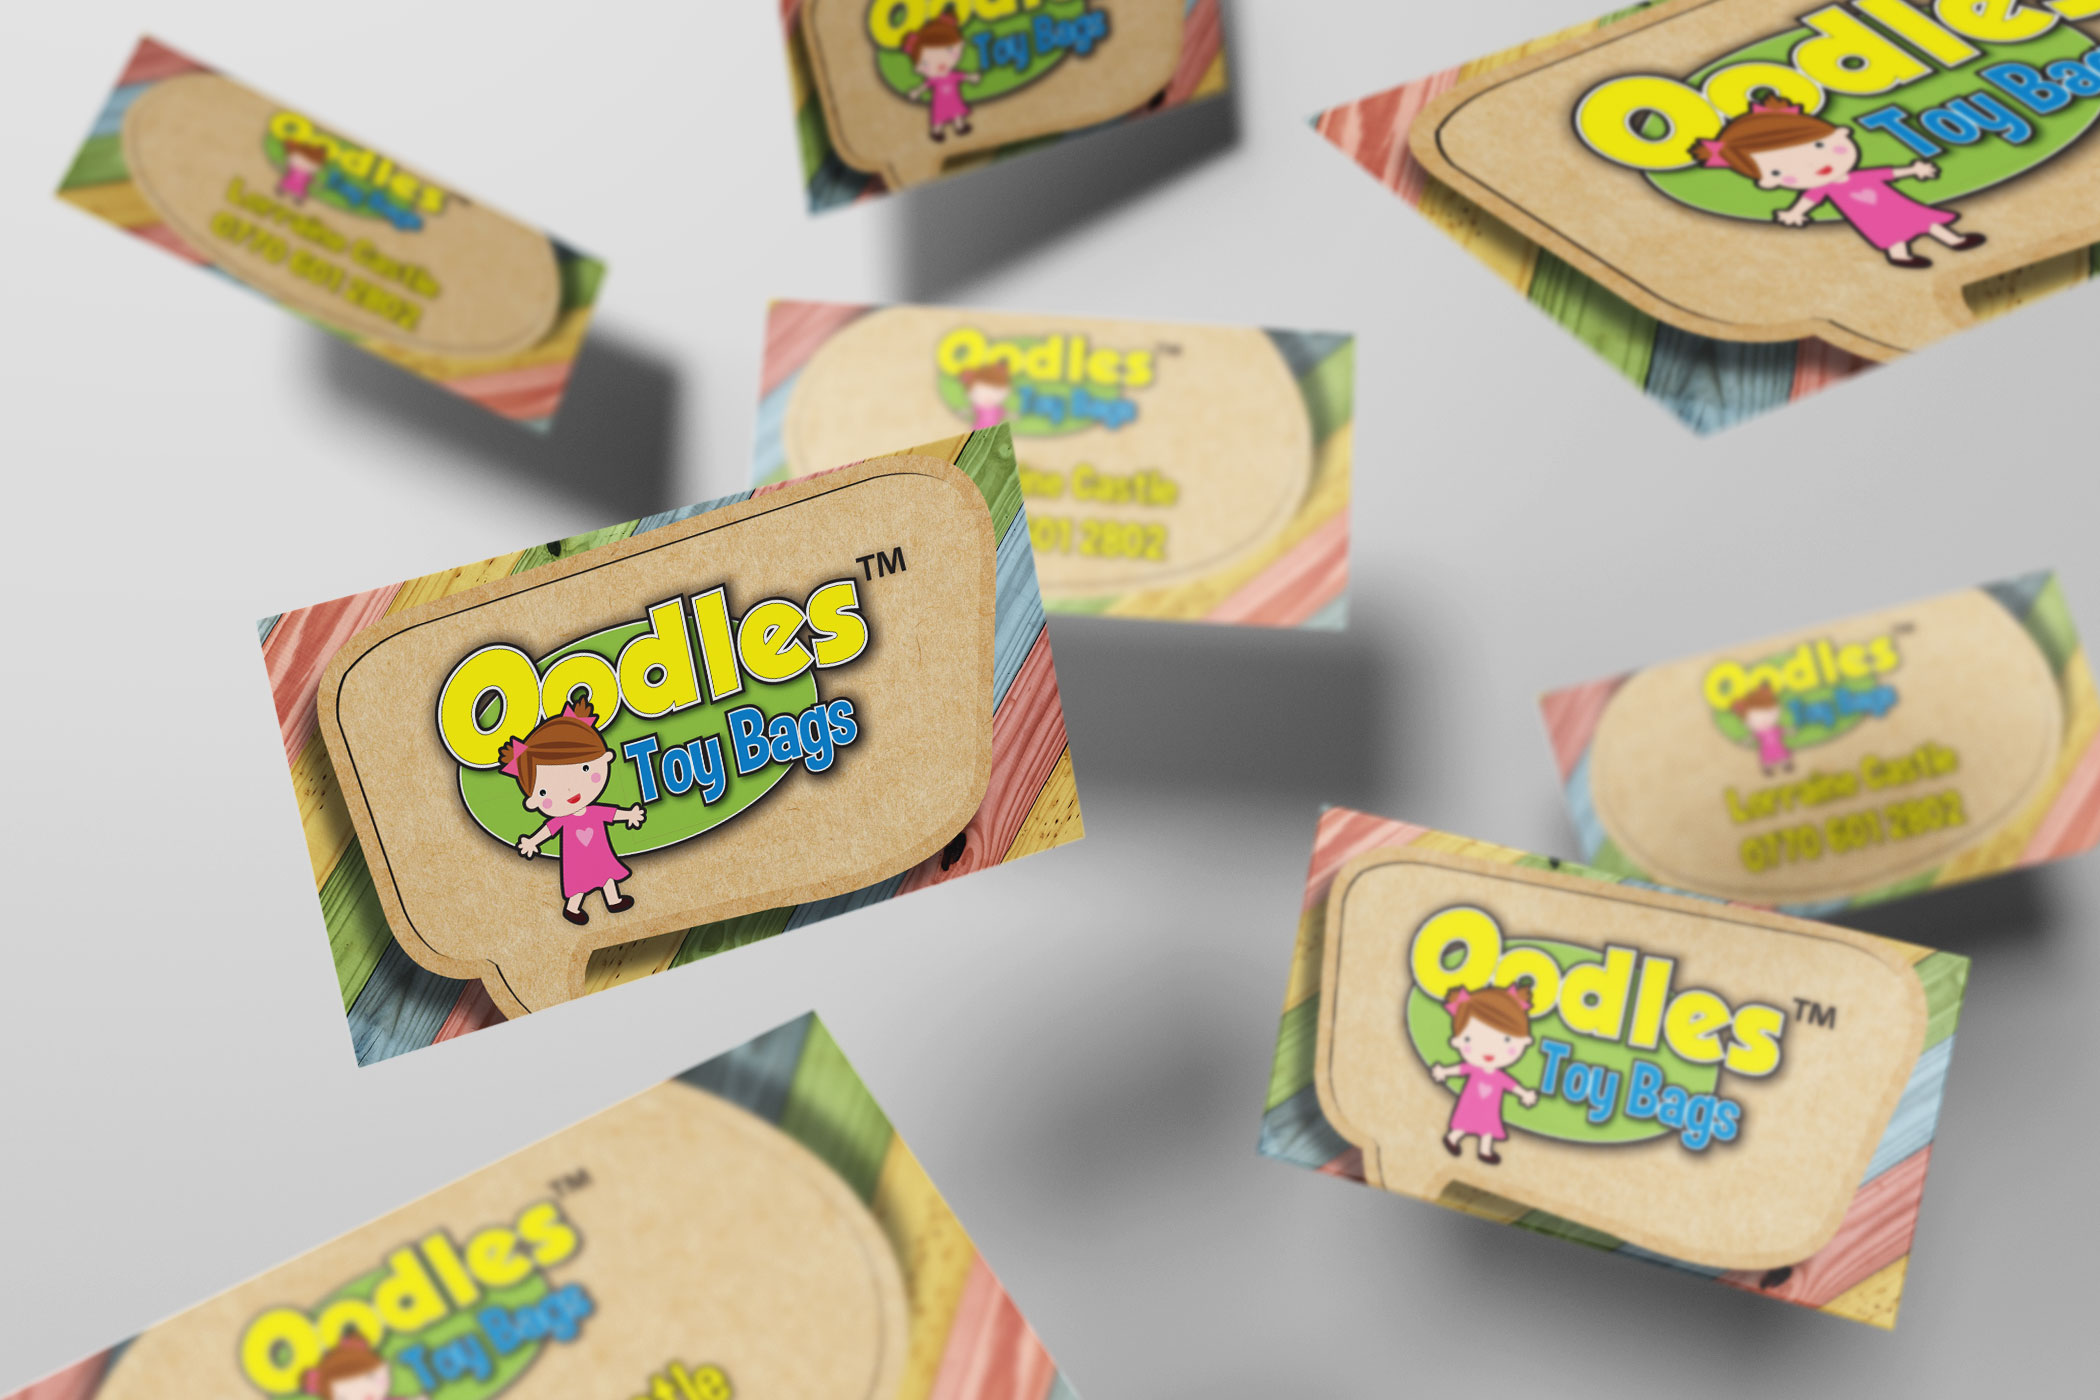 Oodles Toy Bags Business Card Design And Print Firefly New Media Uk